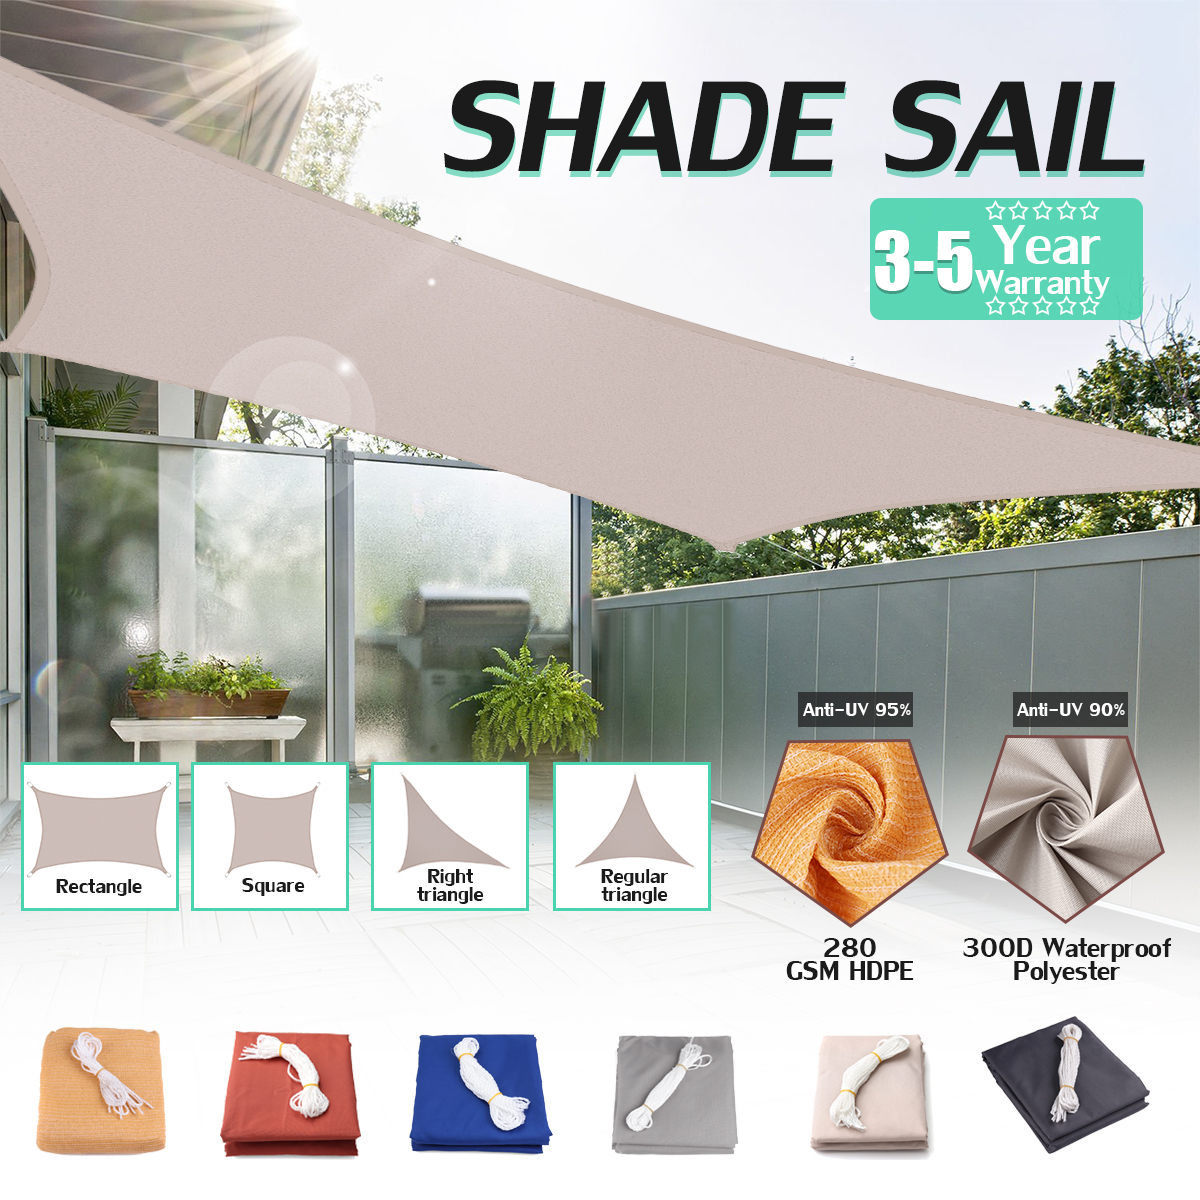 280GSM HDPE Farbic Square 5x5m/4x4m Sun Shade Sail Sunshading Nets 4x4m for Garden Cover Flowers Plants Patio Lawn shelterlogic 25726 12 ft 3 7 m square shade sail evergreen 230 gsm